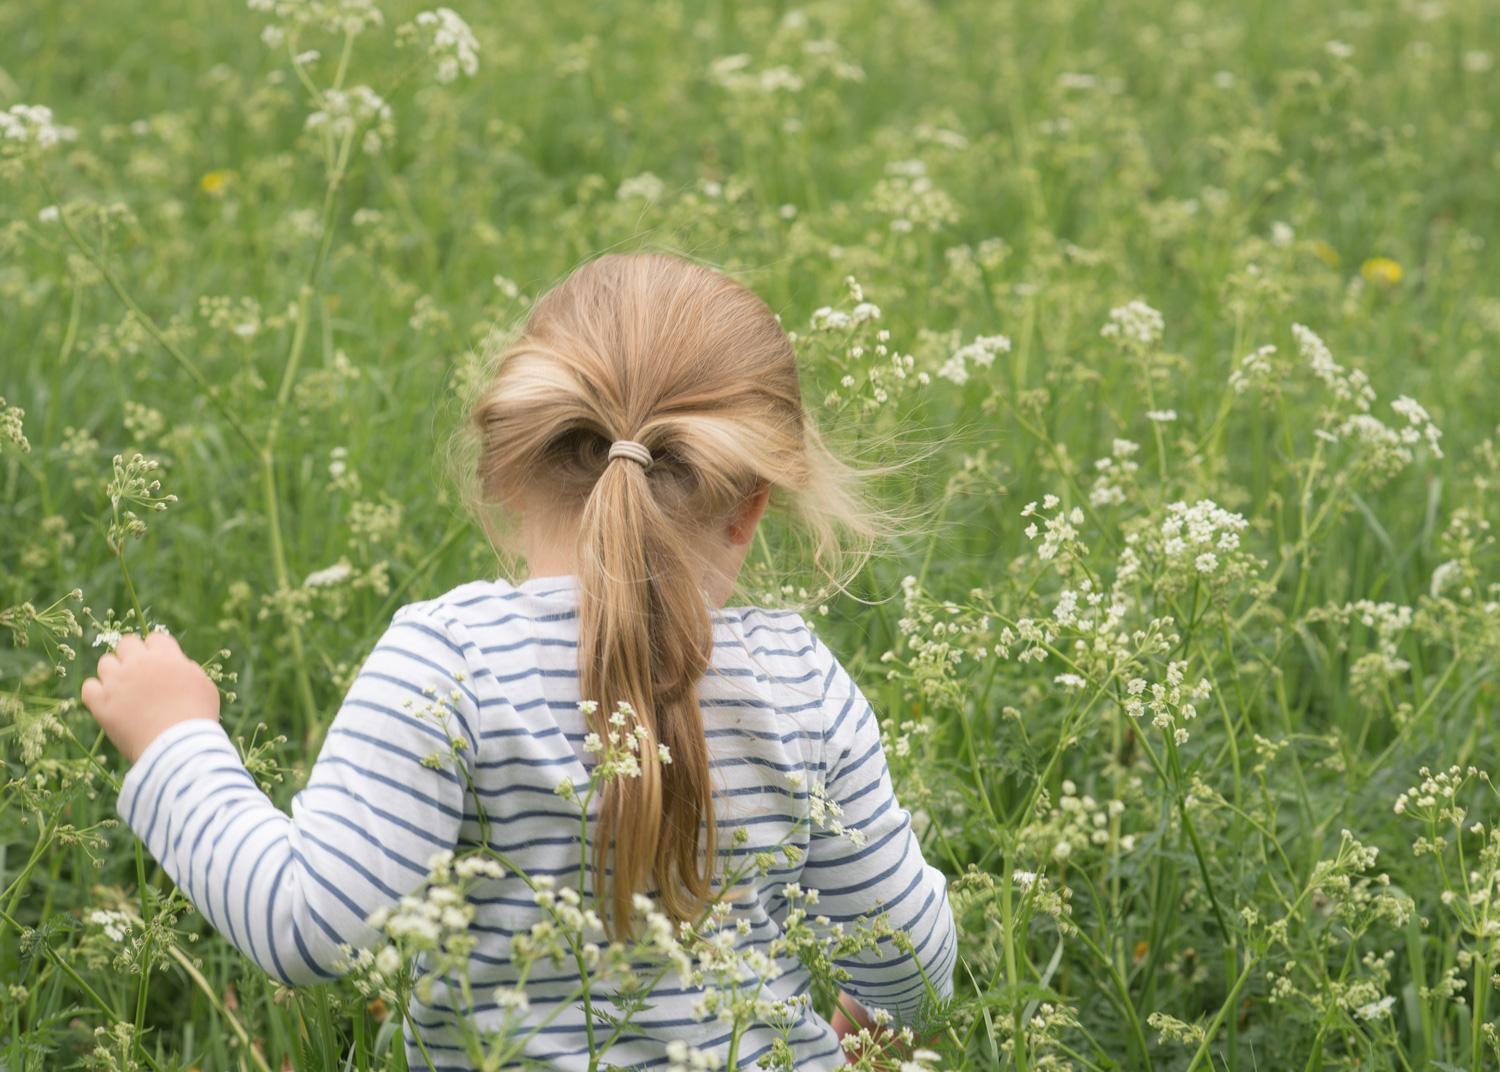 Little girl walking through field